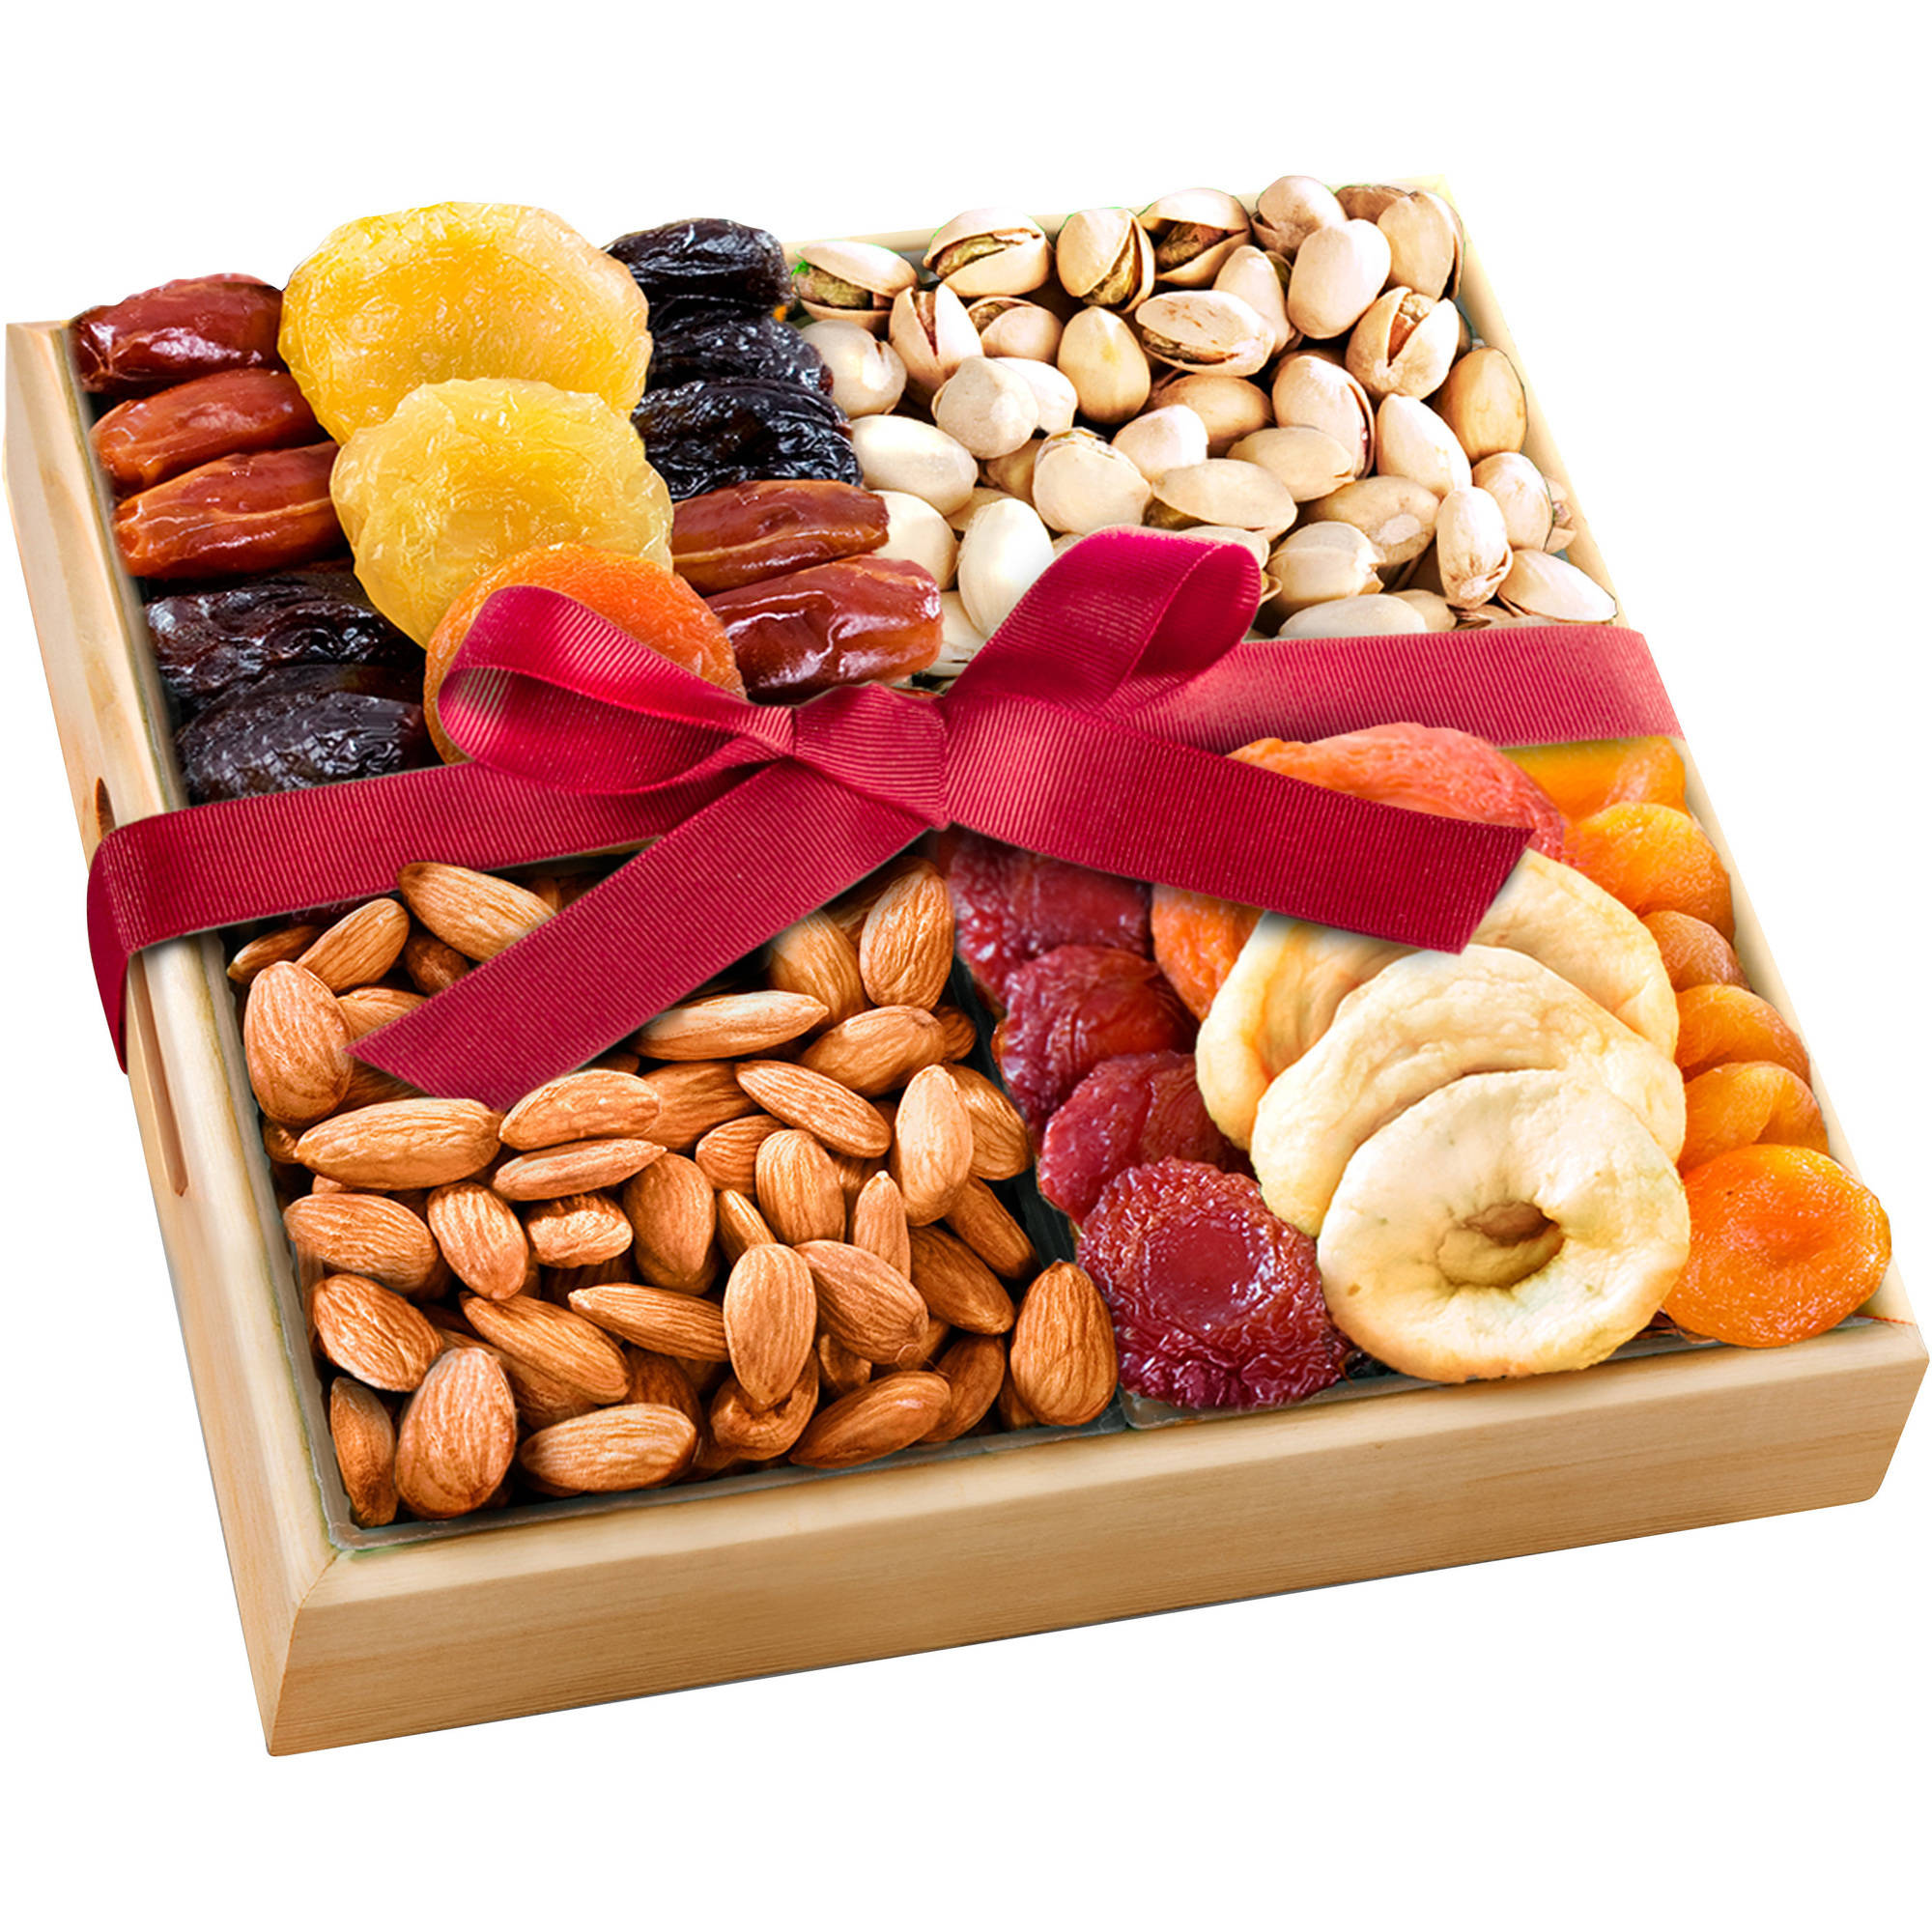 Golden State Fruit Gourmet Dried Fruit and Nut Assortment Gift Tray, 9 pc